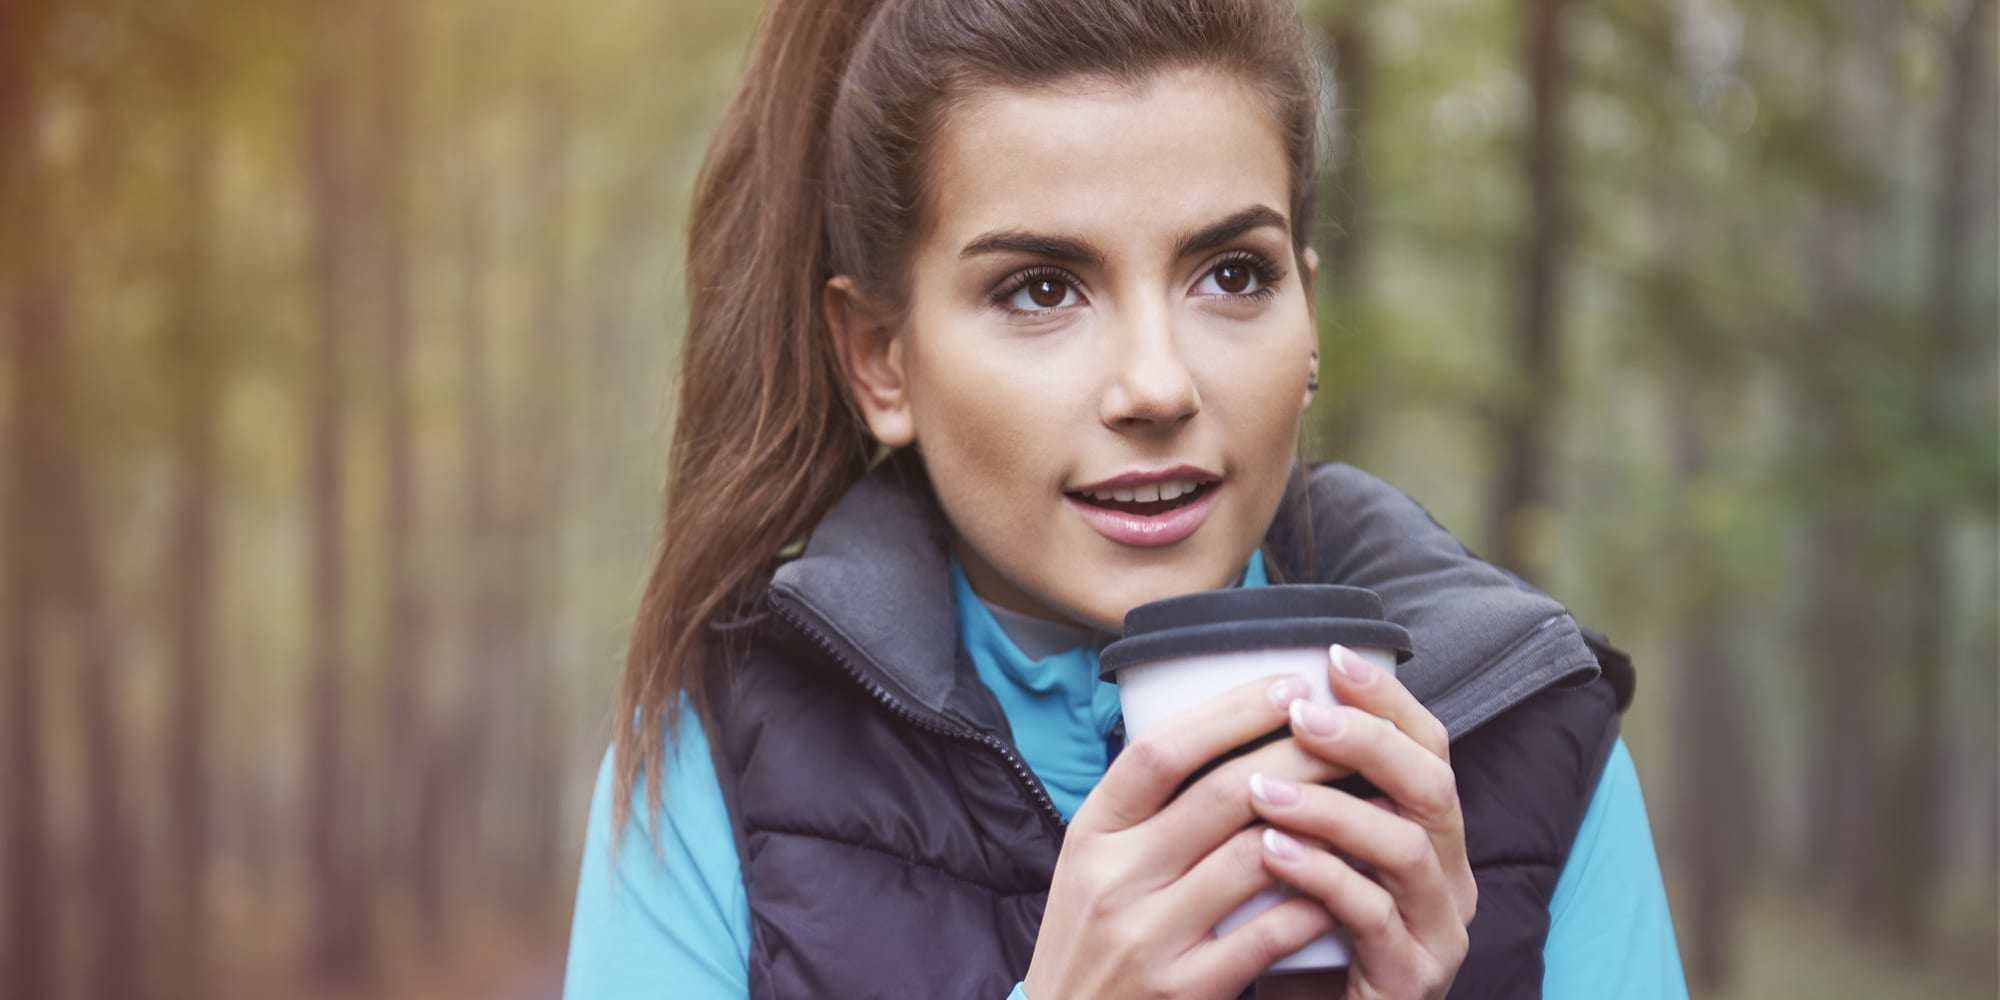 Can You Drink Coffee For Weight Loss?